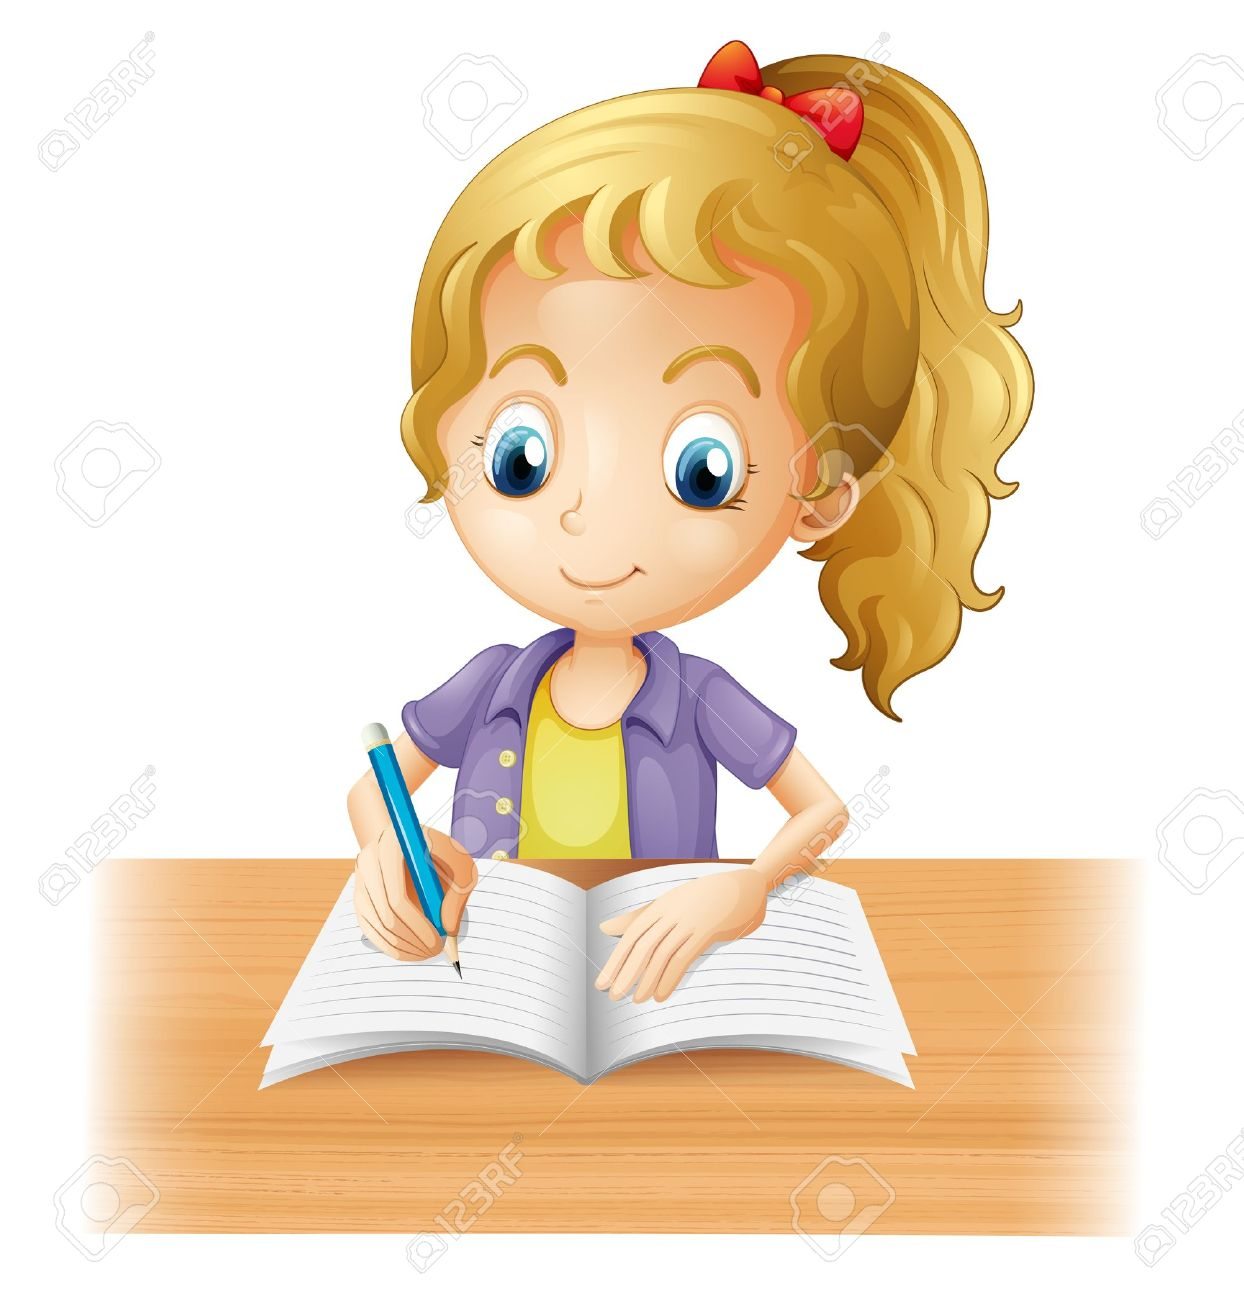 illustration of a long haired girl writing on a white background rh 123rf com boy and girl writing clipart little girl writing clipart